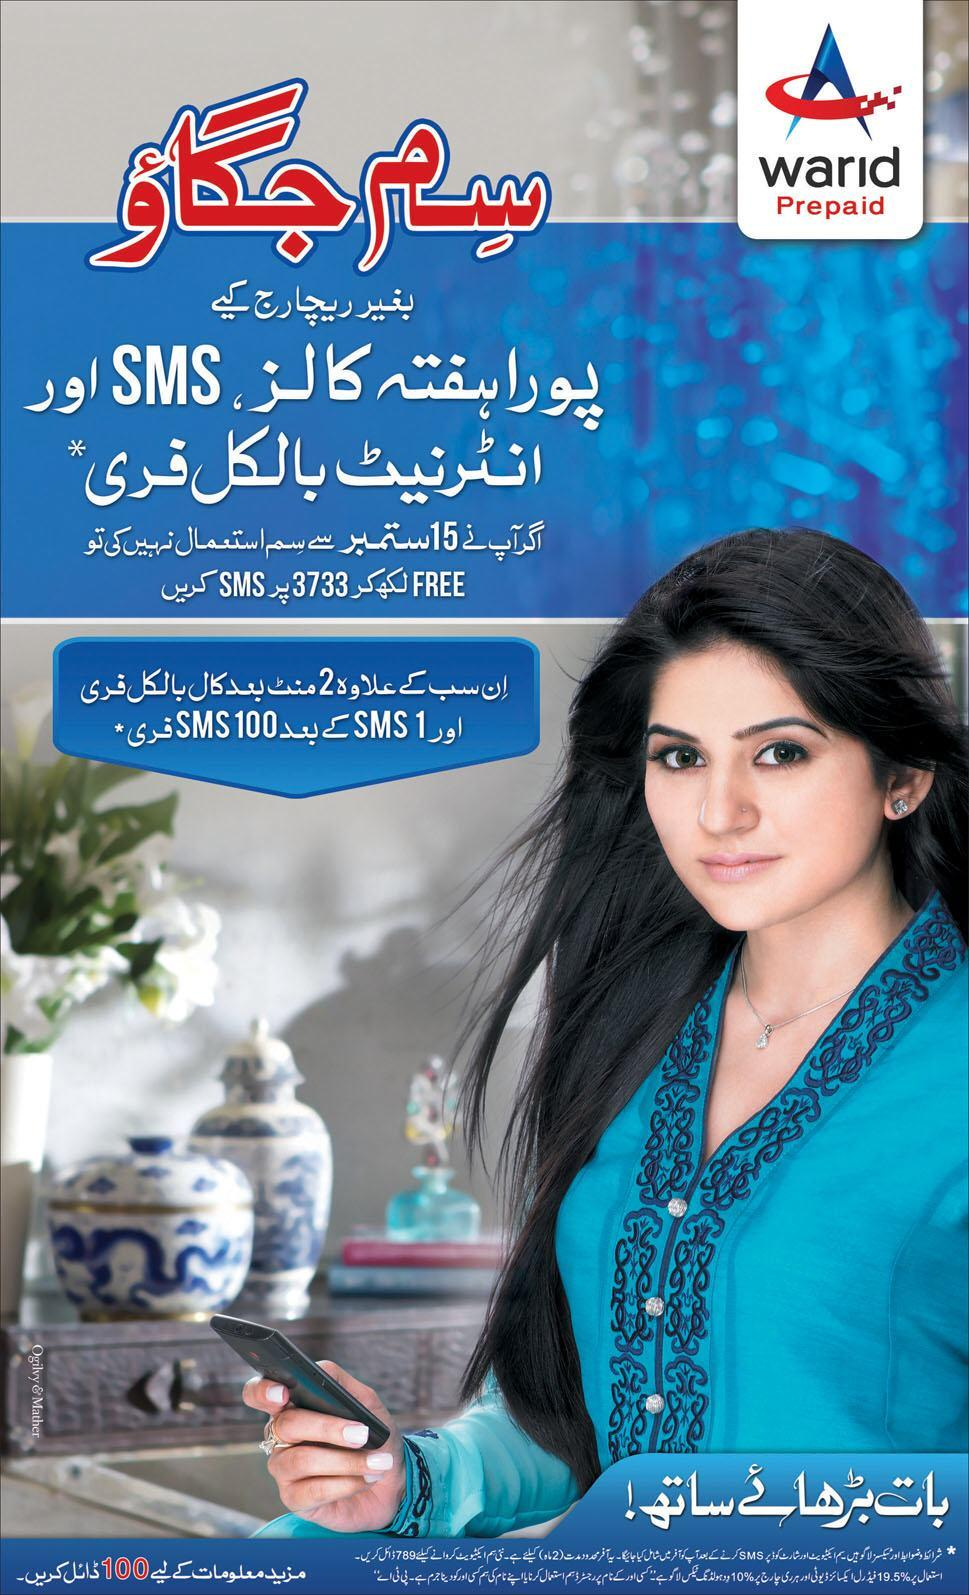 Warid Sim Lagao Offer Full Week Free Mins, SMS & Internet